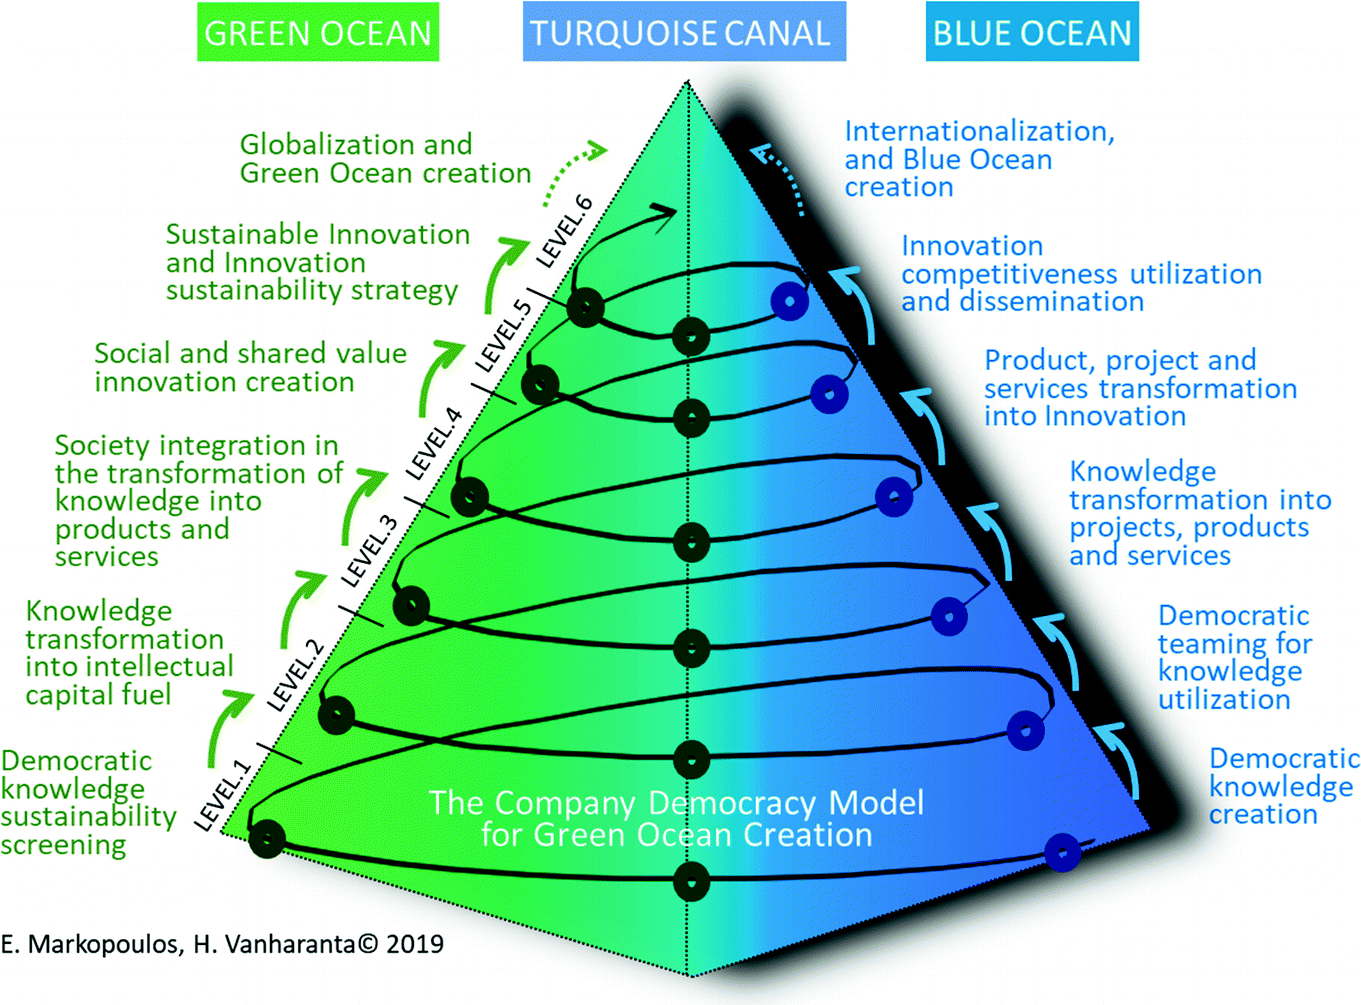 Green Ocean Strategy: Democratizing Business Knowledge for